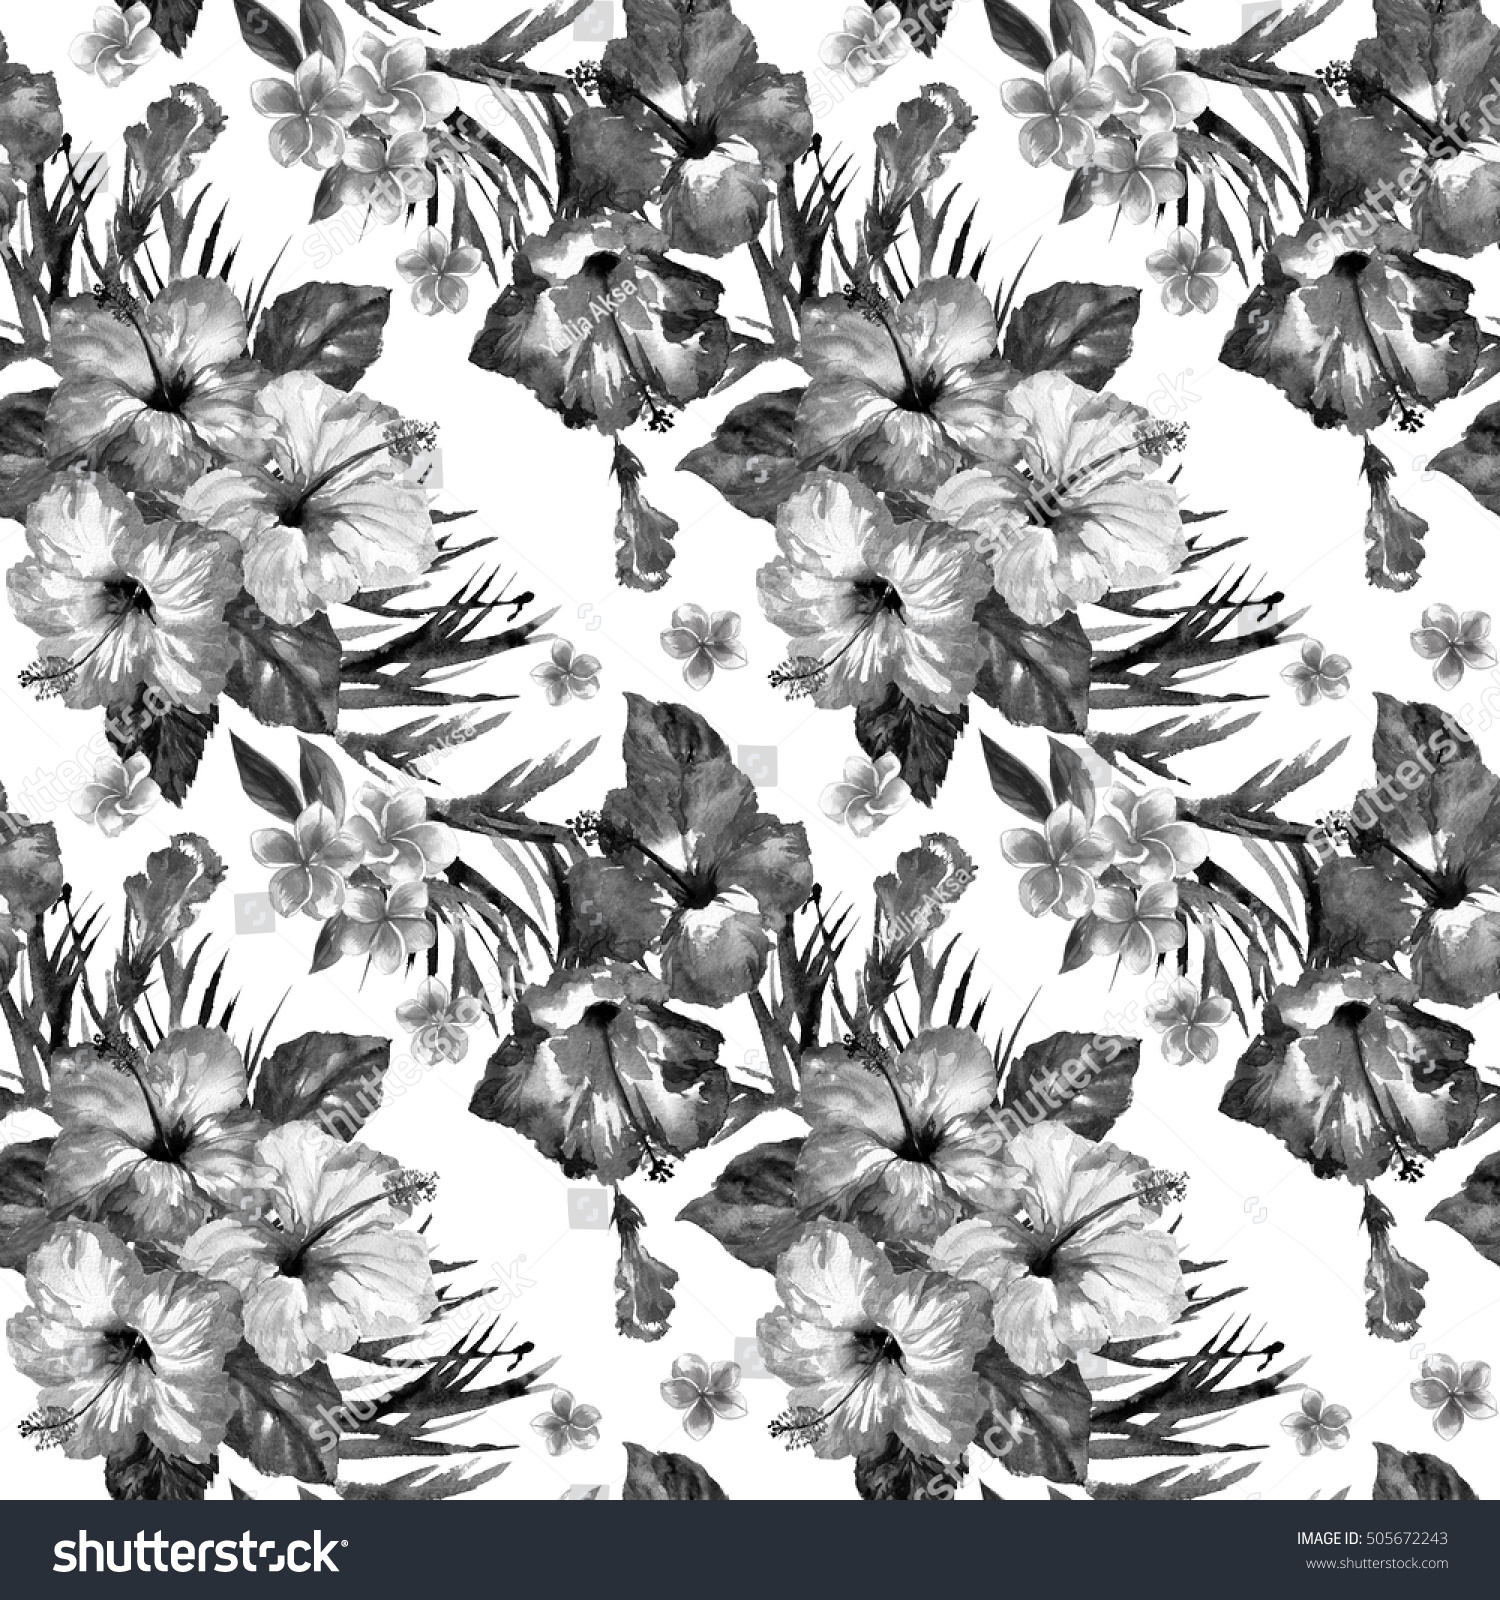 Aloha floral pattern tropical bouquets background blossom flowers black and white color watercolor drawing